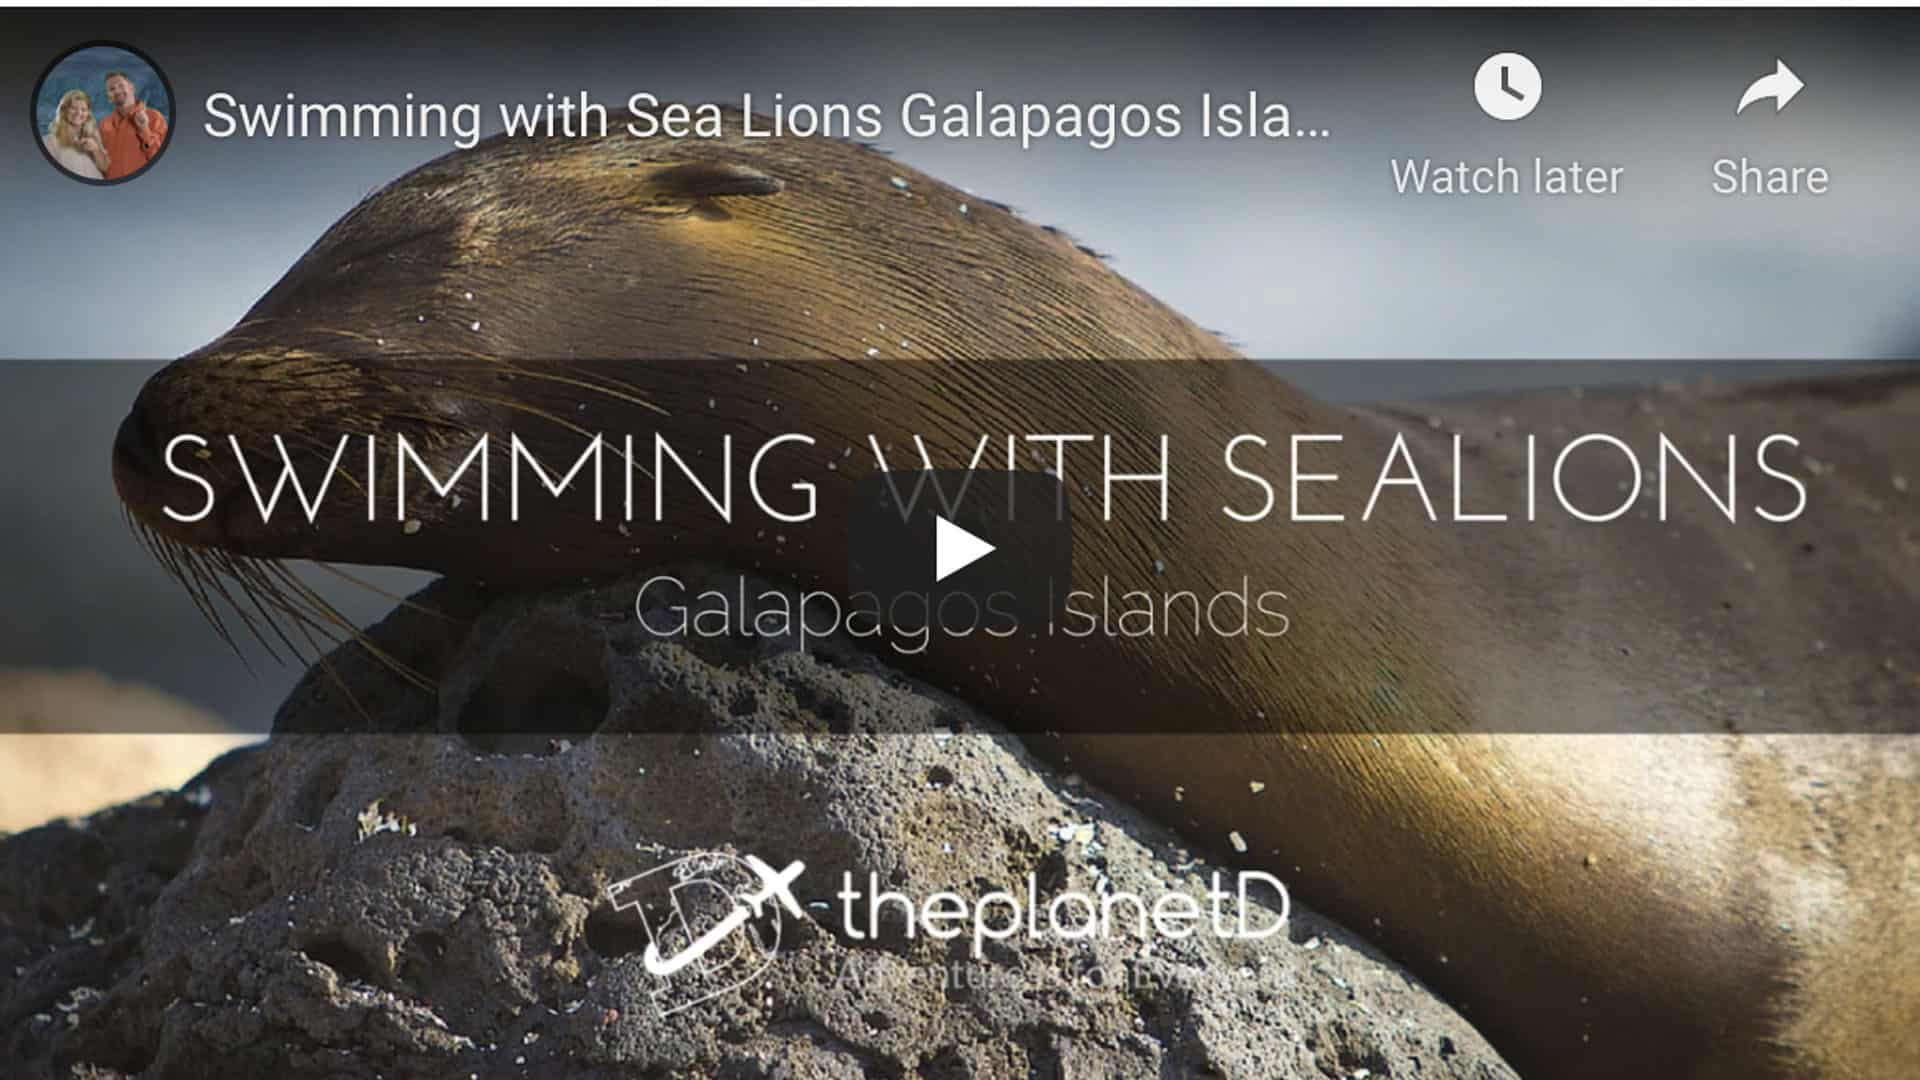 sea lions of the Galapagos Islands